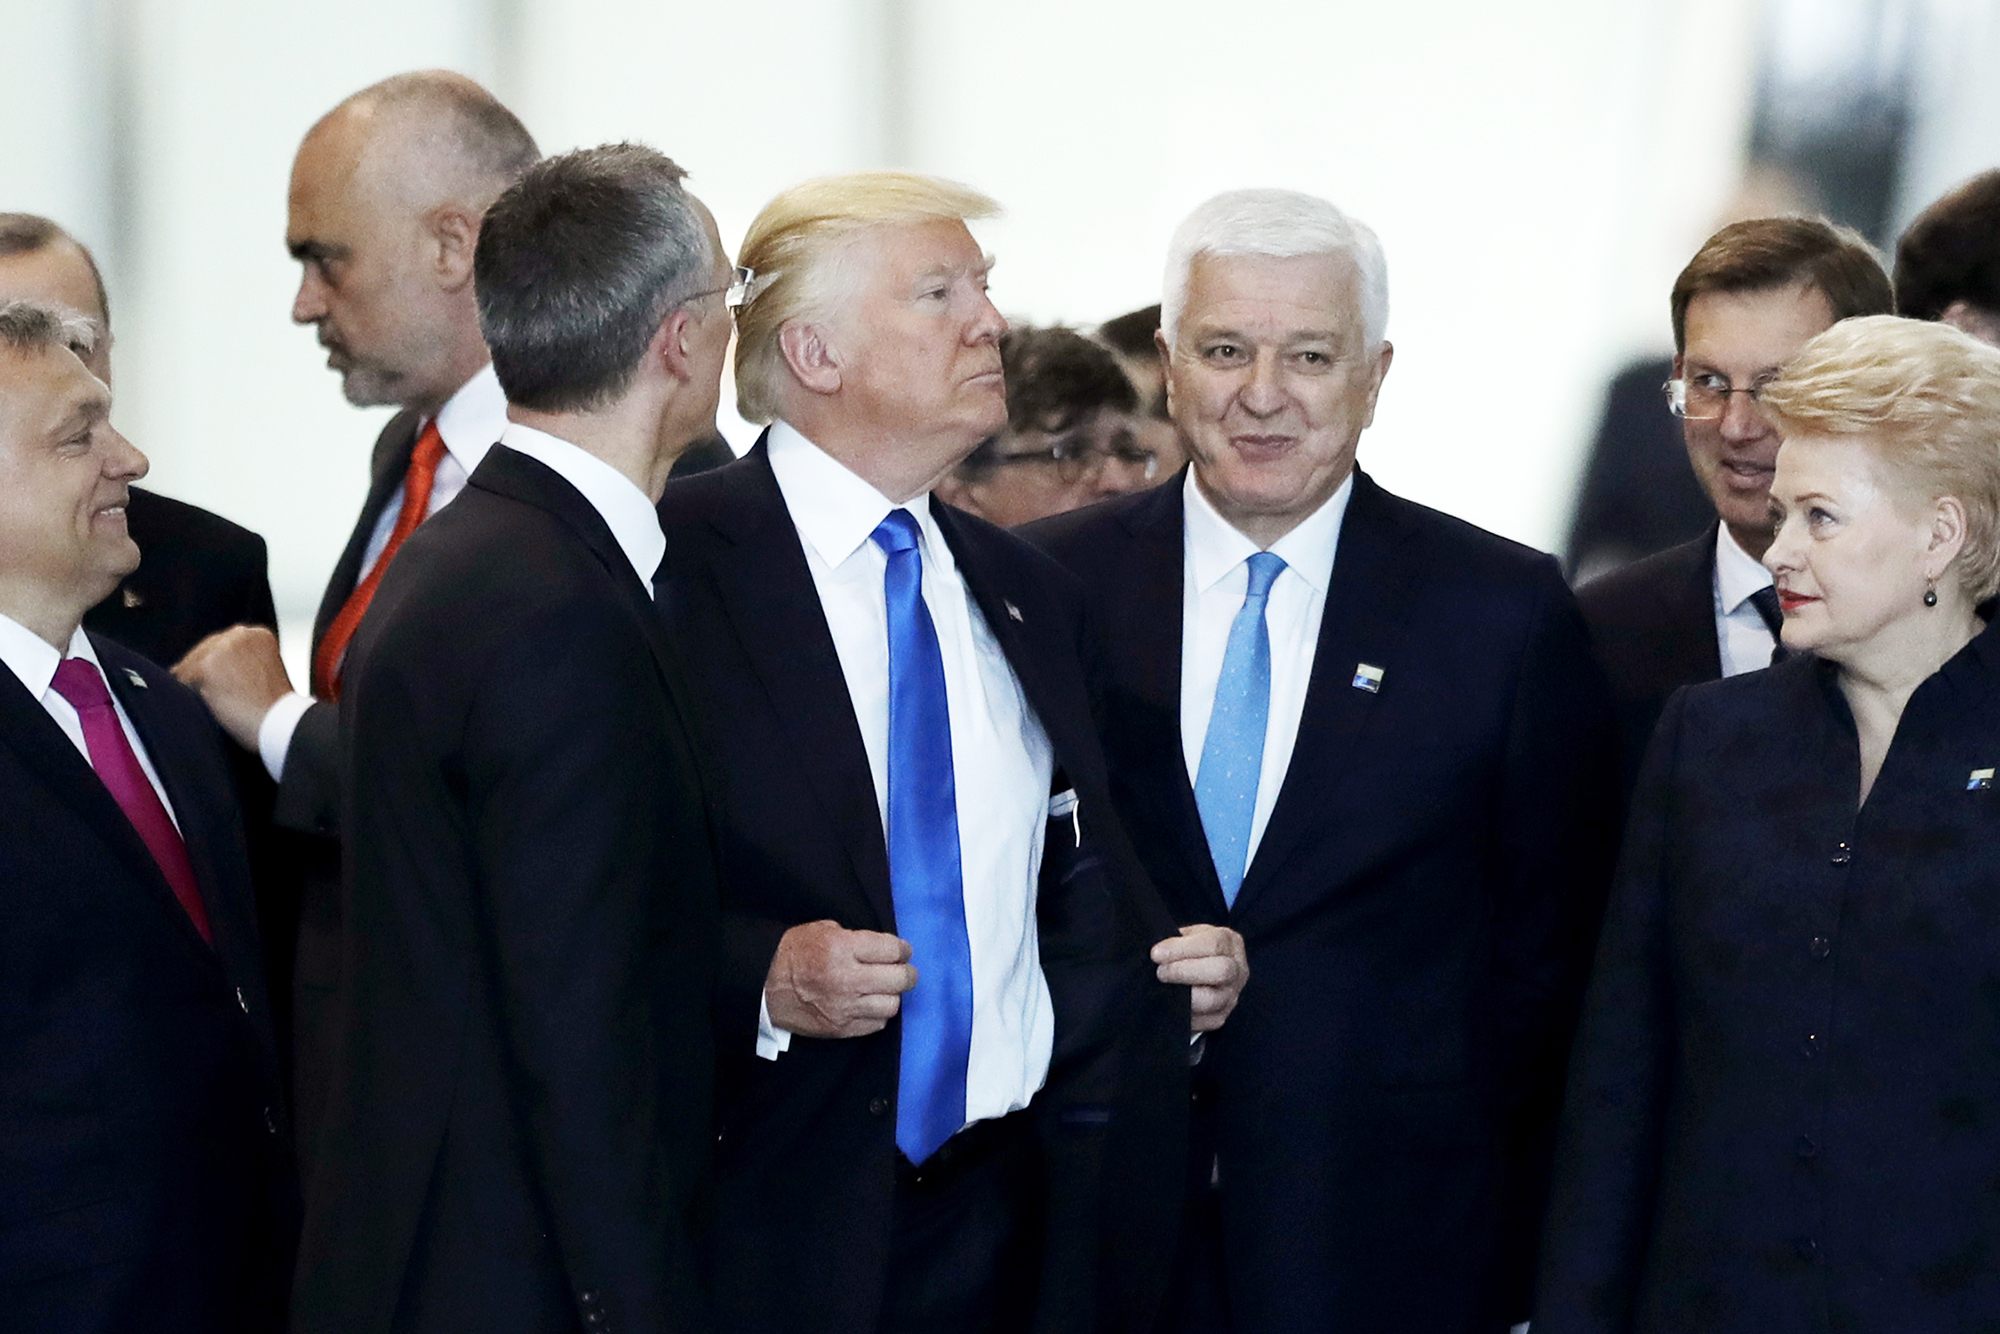 Montenegro Prime Minister Dusko Markovic, center right, after appearing to be pushed by Donald Trump, center, during a NATO summit of heads of state and government in Brussels, on May 25, 2017.